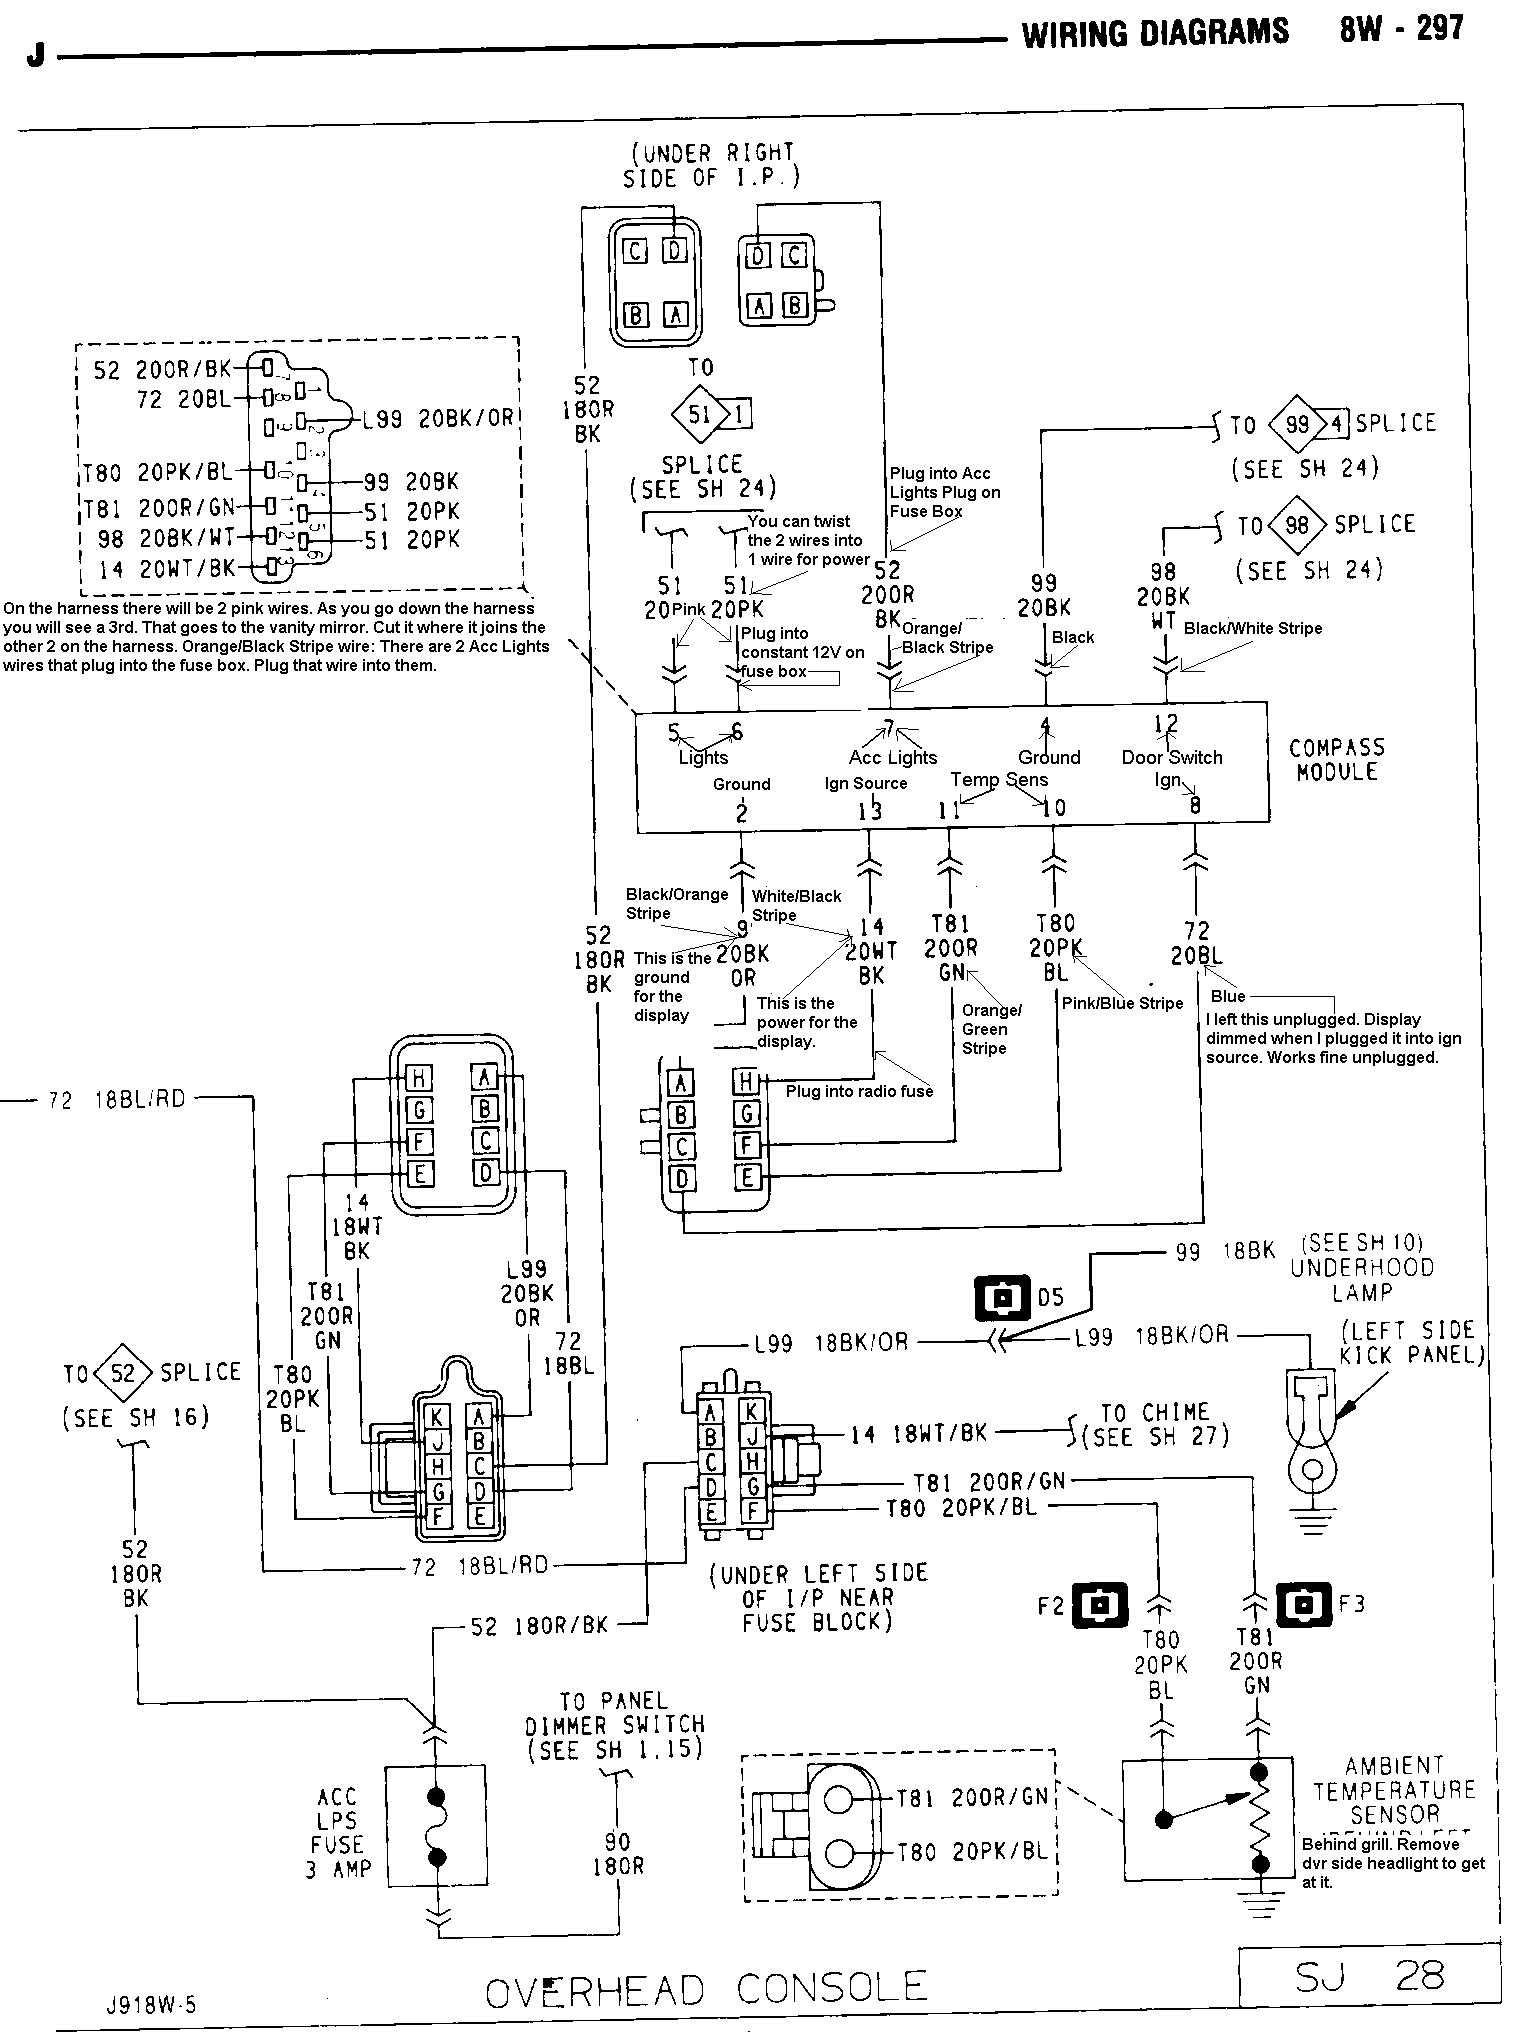 91consolediagrammodified tom 'oljeep' collins fsj wiring page 1991 jeep cherokee wiring diagram at gsmx.co